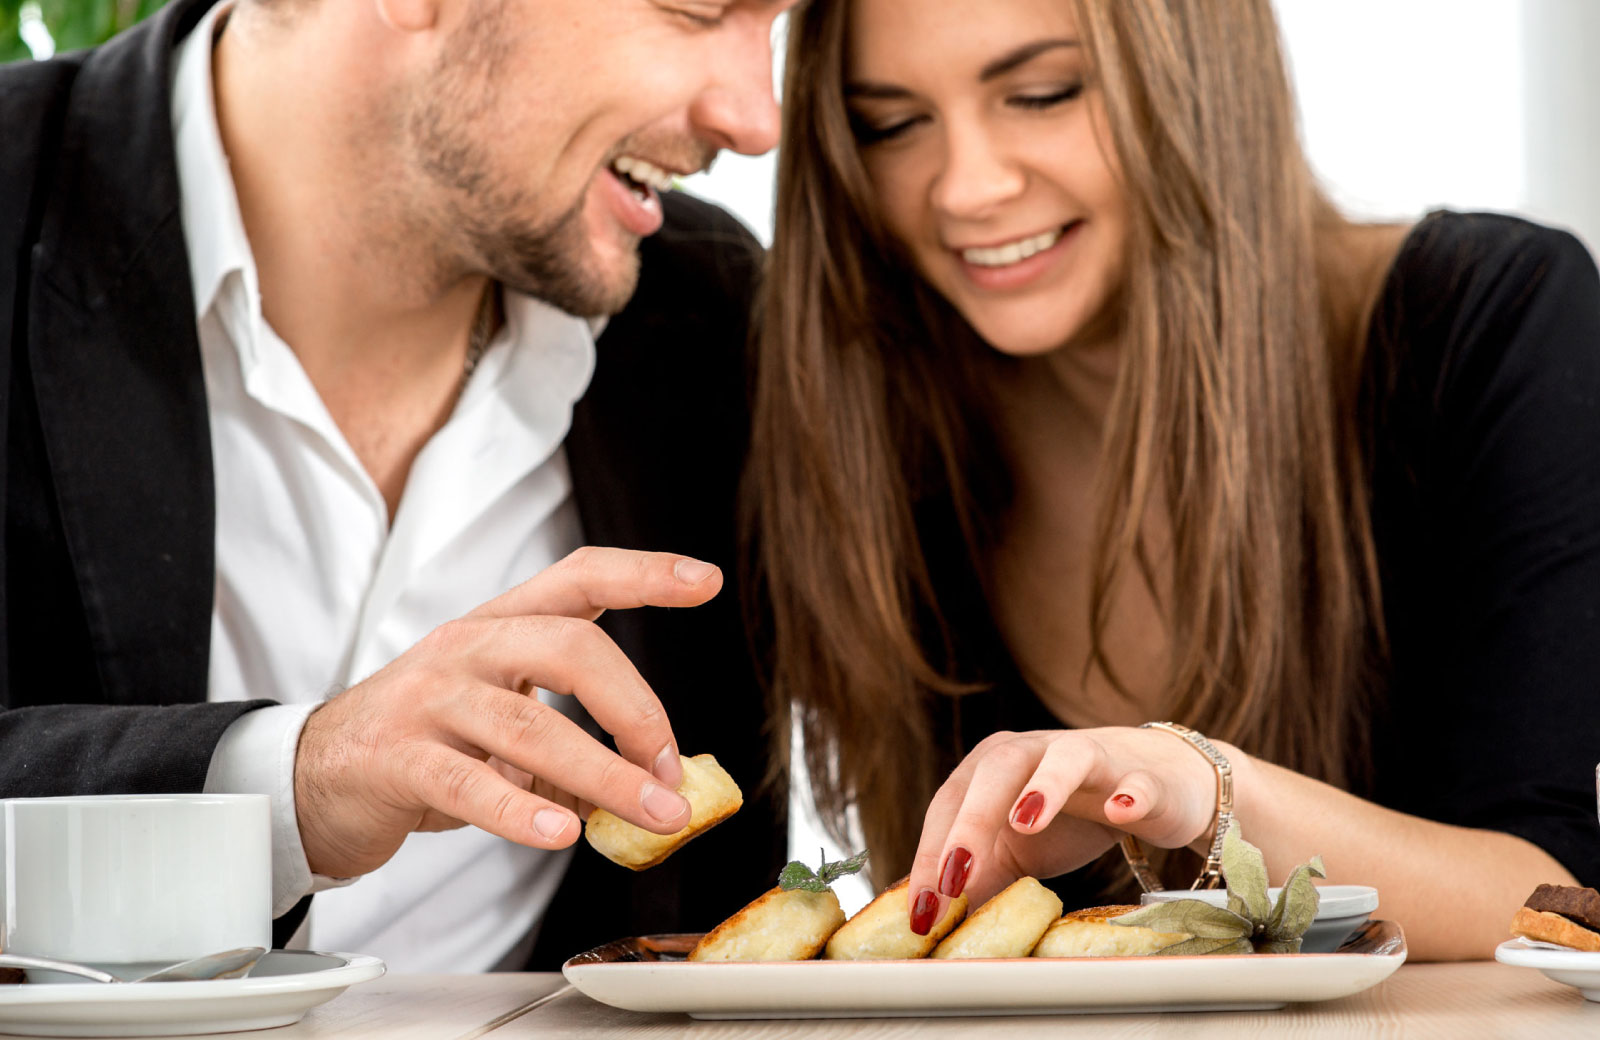 couple sharing food in a restaurant